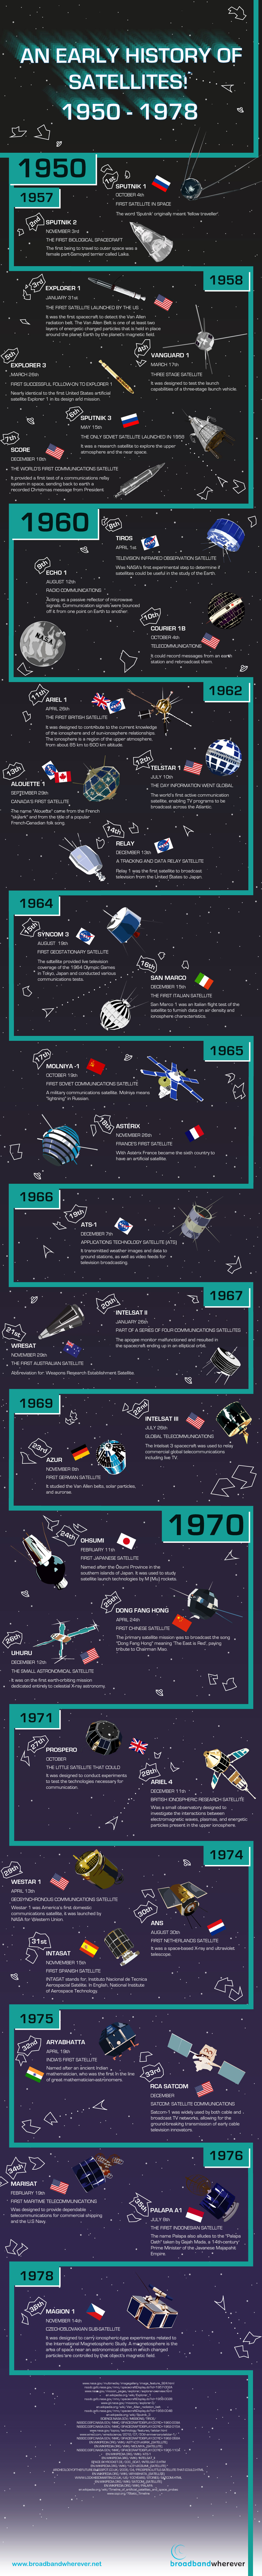 An early history of satellites